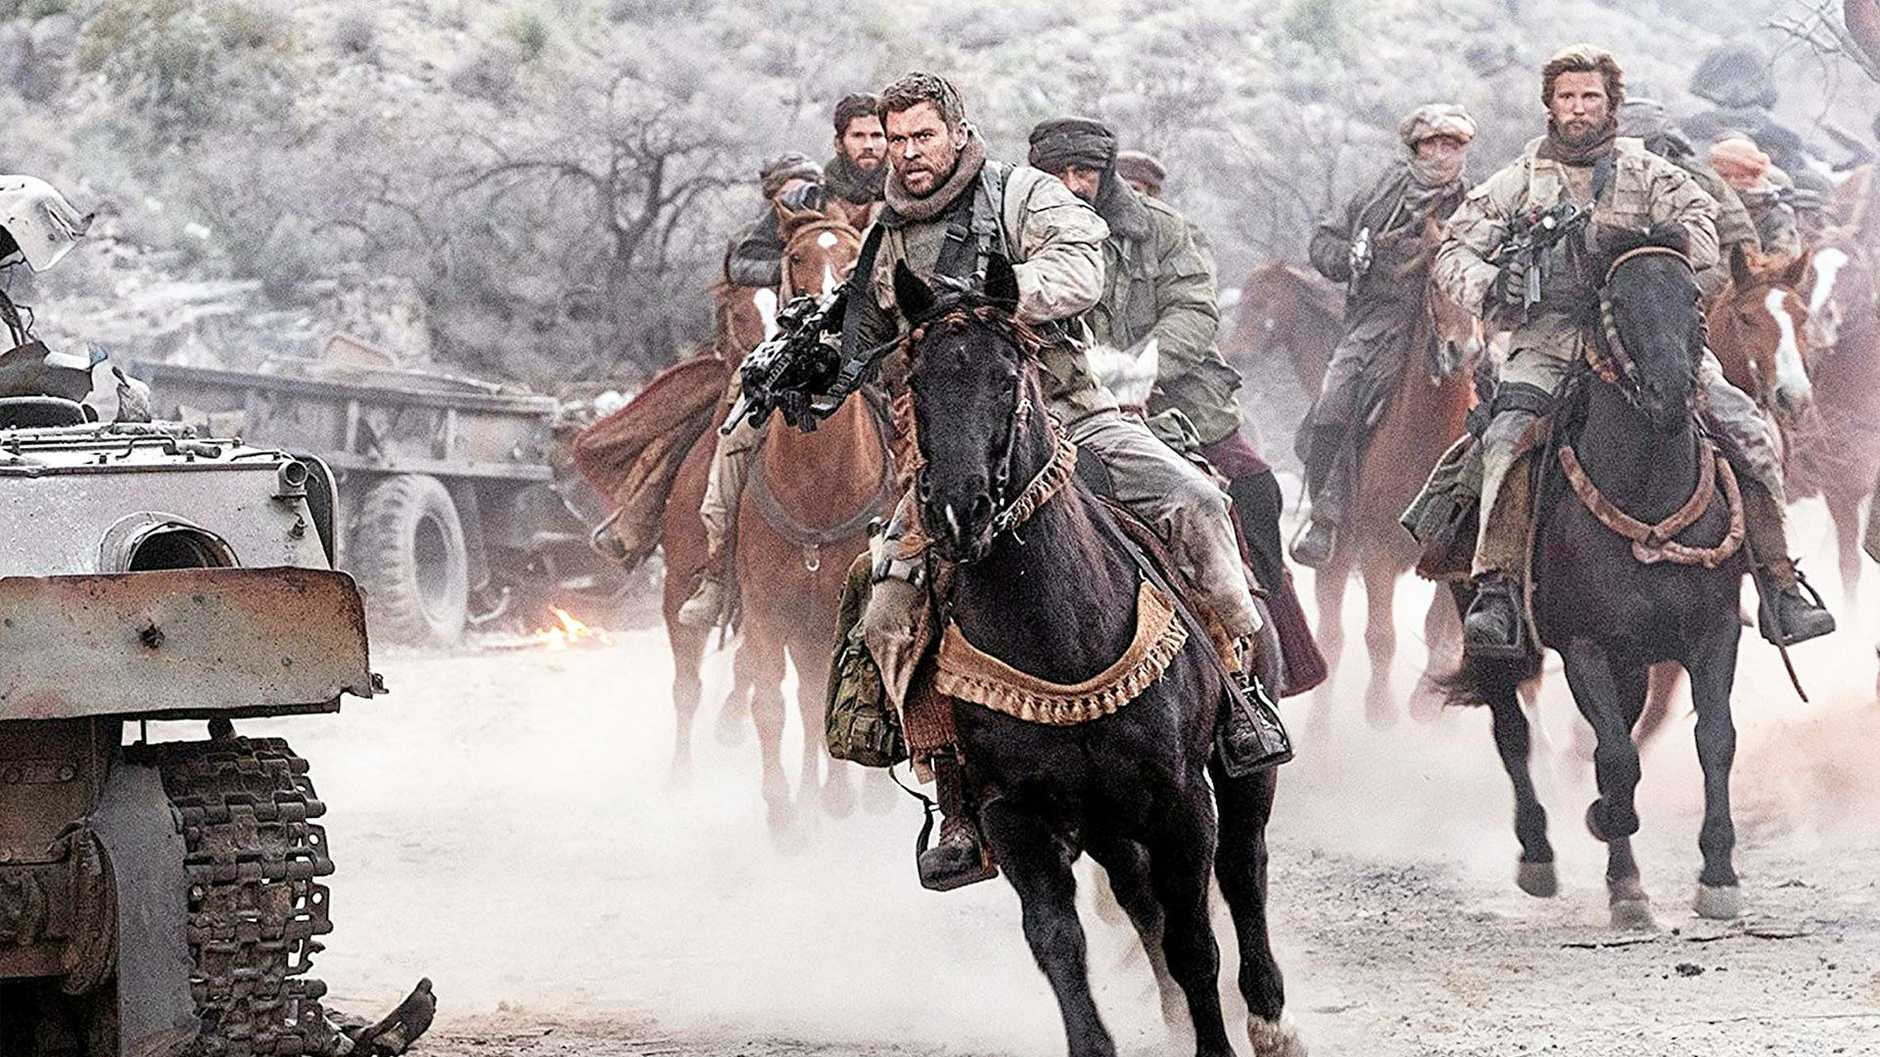 LEADING MAN: Chris Hemsworth in a scene from the movie 12 Strong.